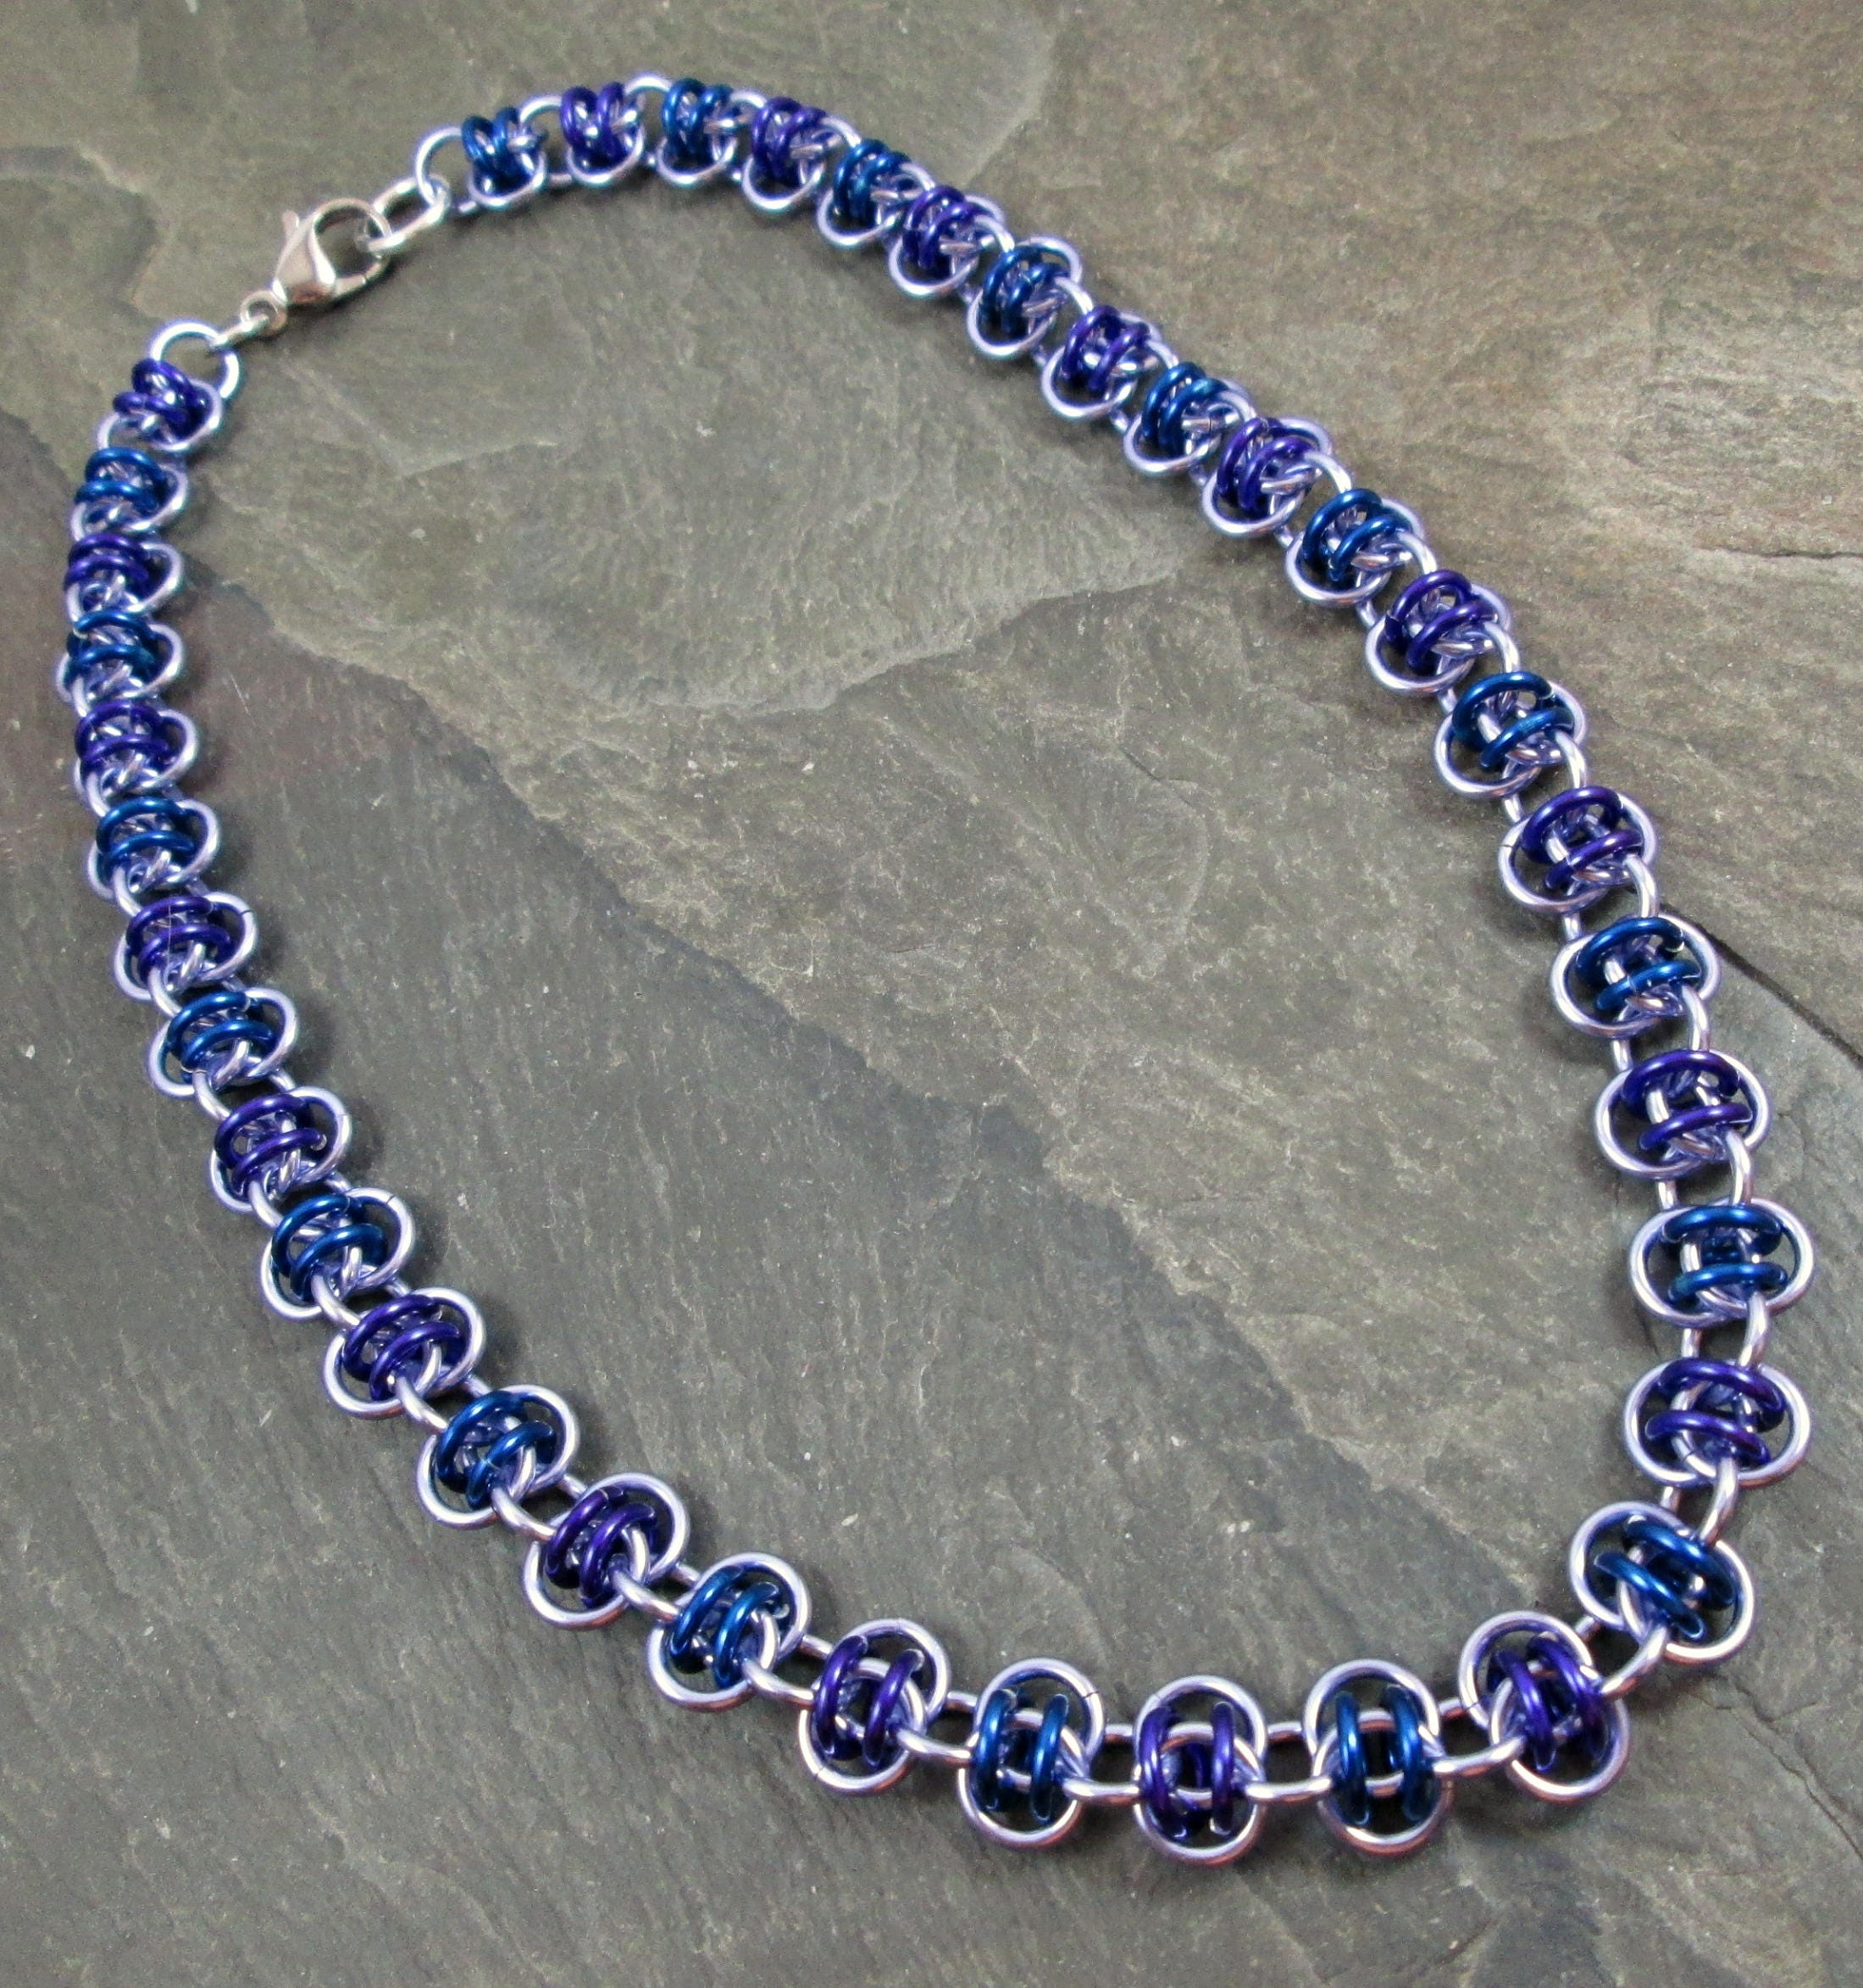 Teal Blue Beaded Barrel Chainmaille Necklace